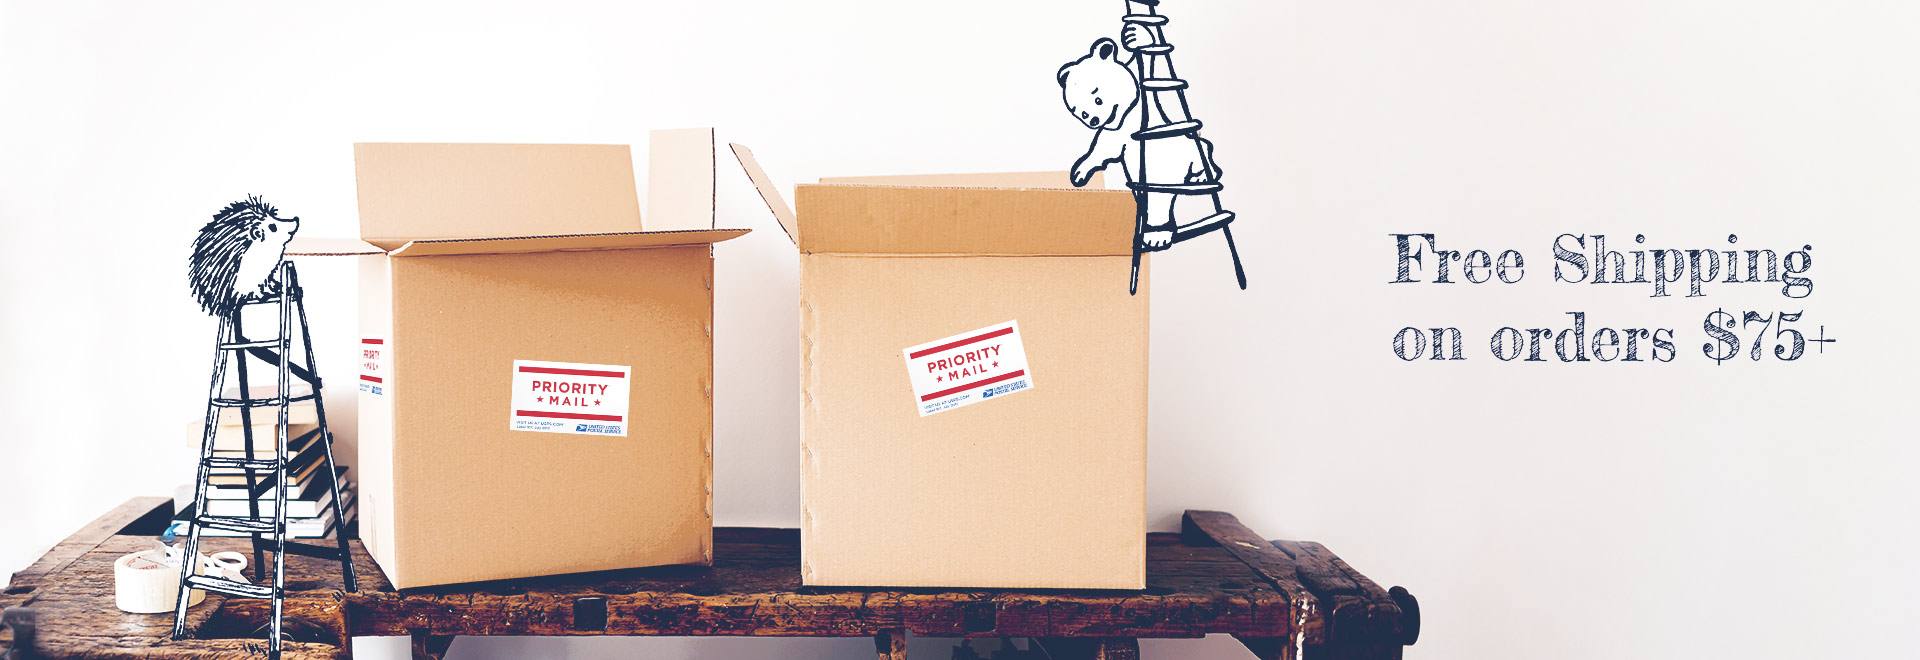 hedgehogs on ladders packing shipping boxes